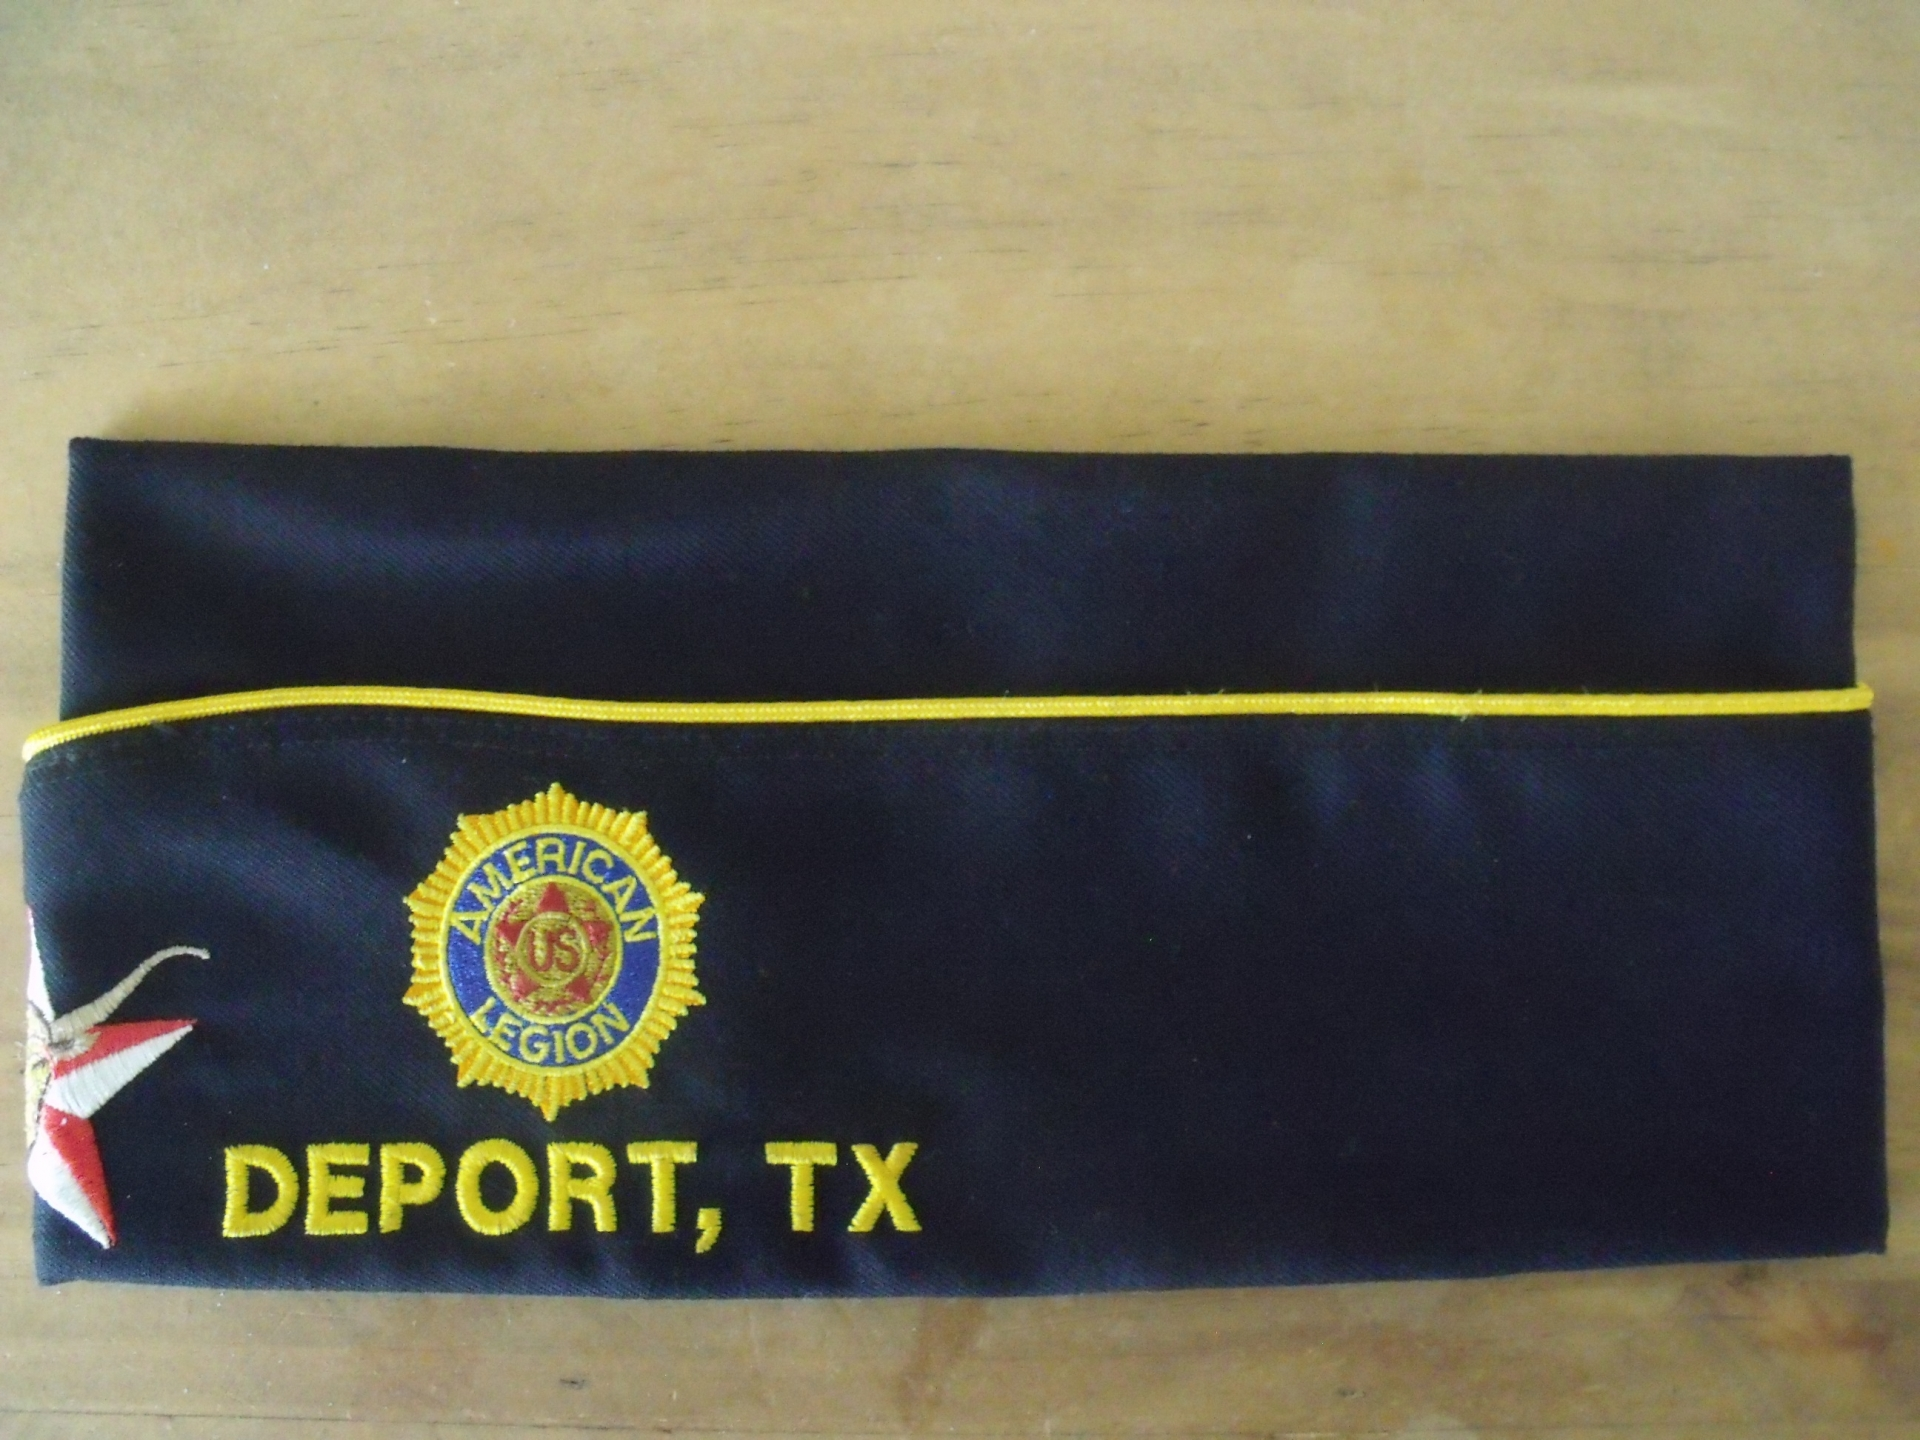 Post 199 Deport, Texas